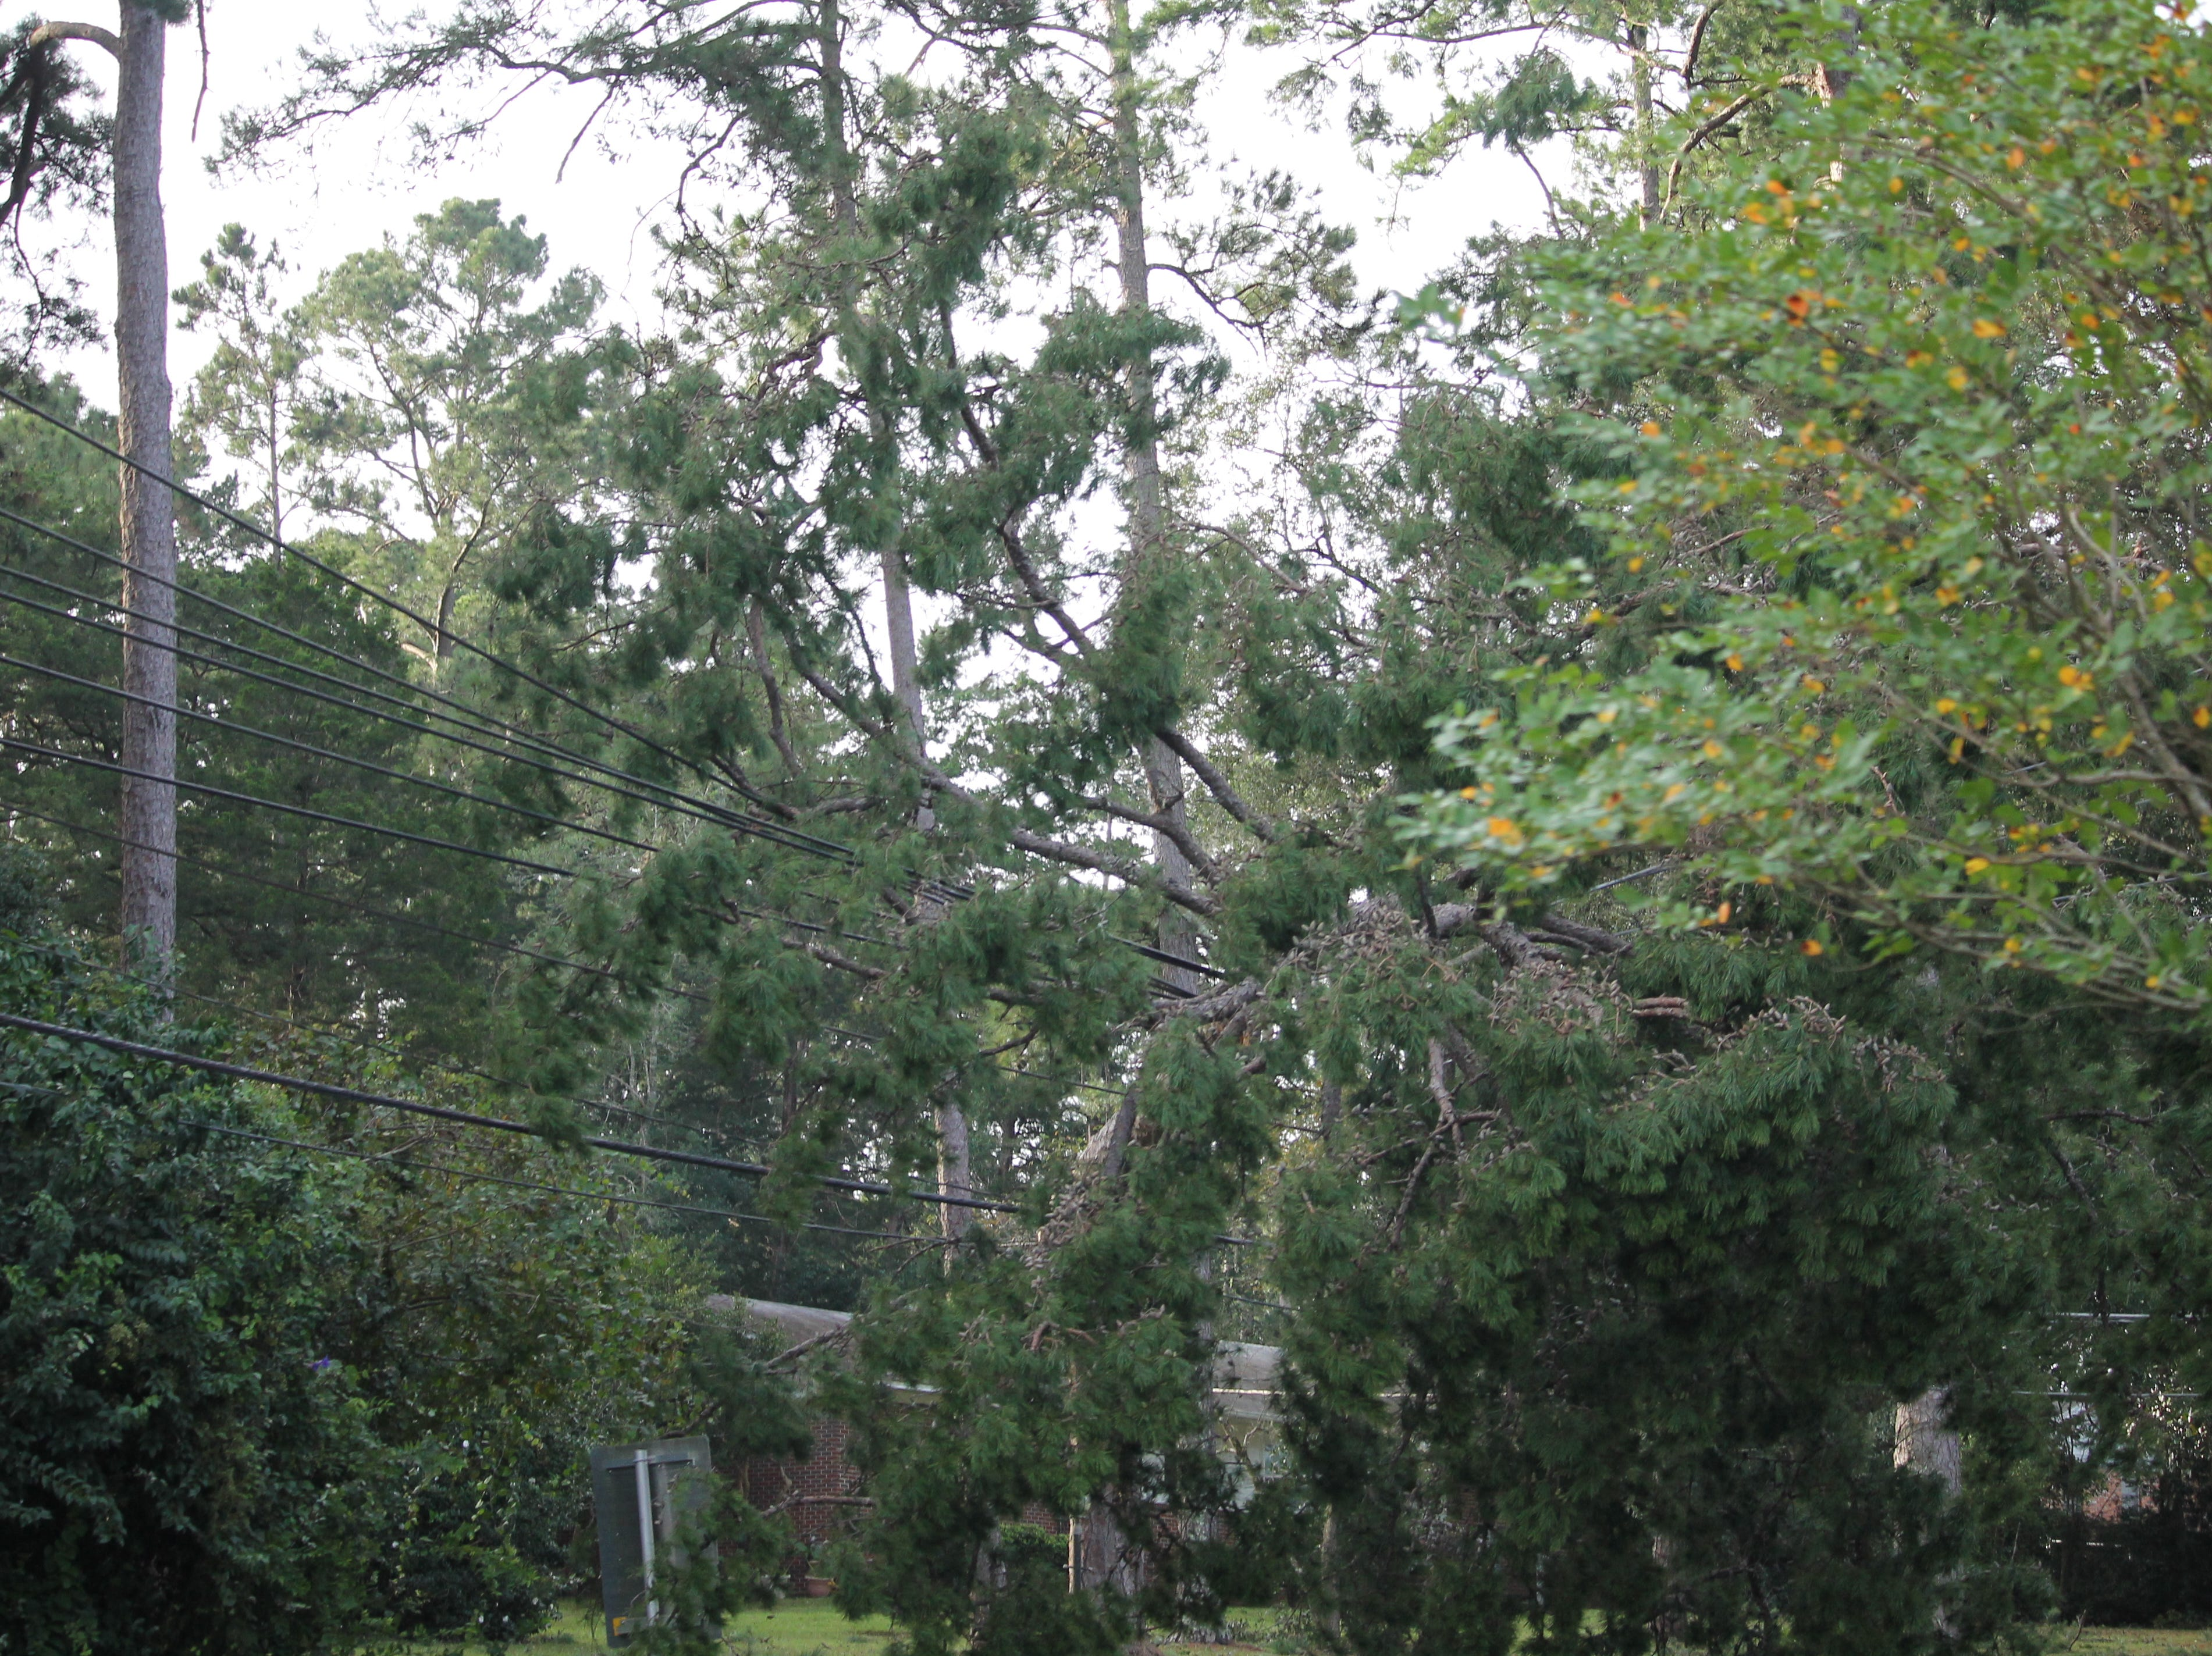 Downed tree on Thomasville Rd. in Tallahassee.